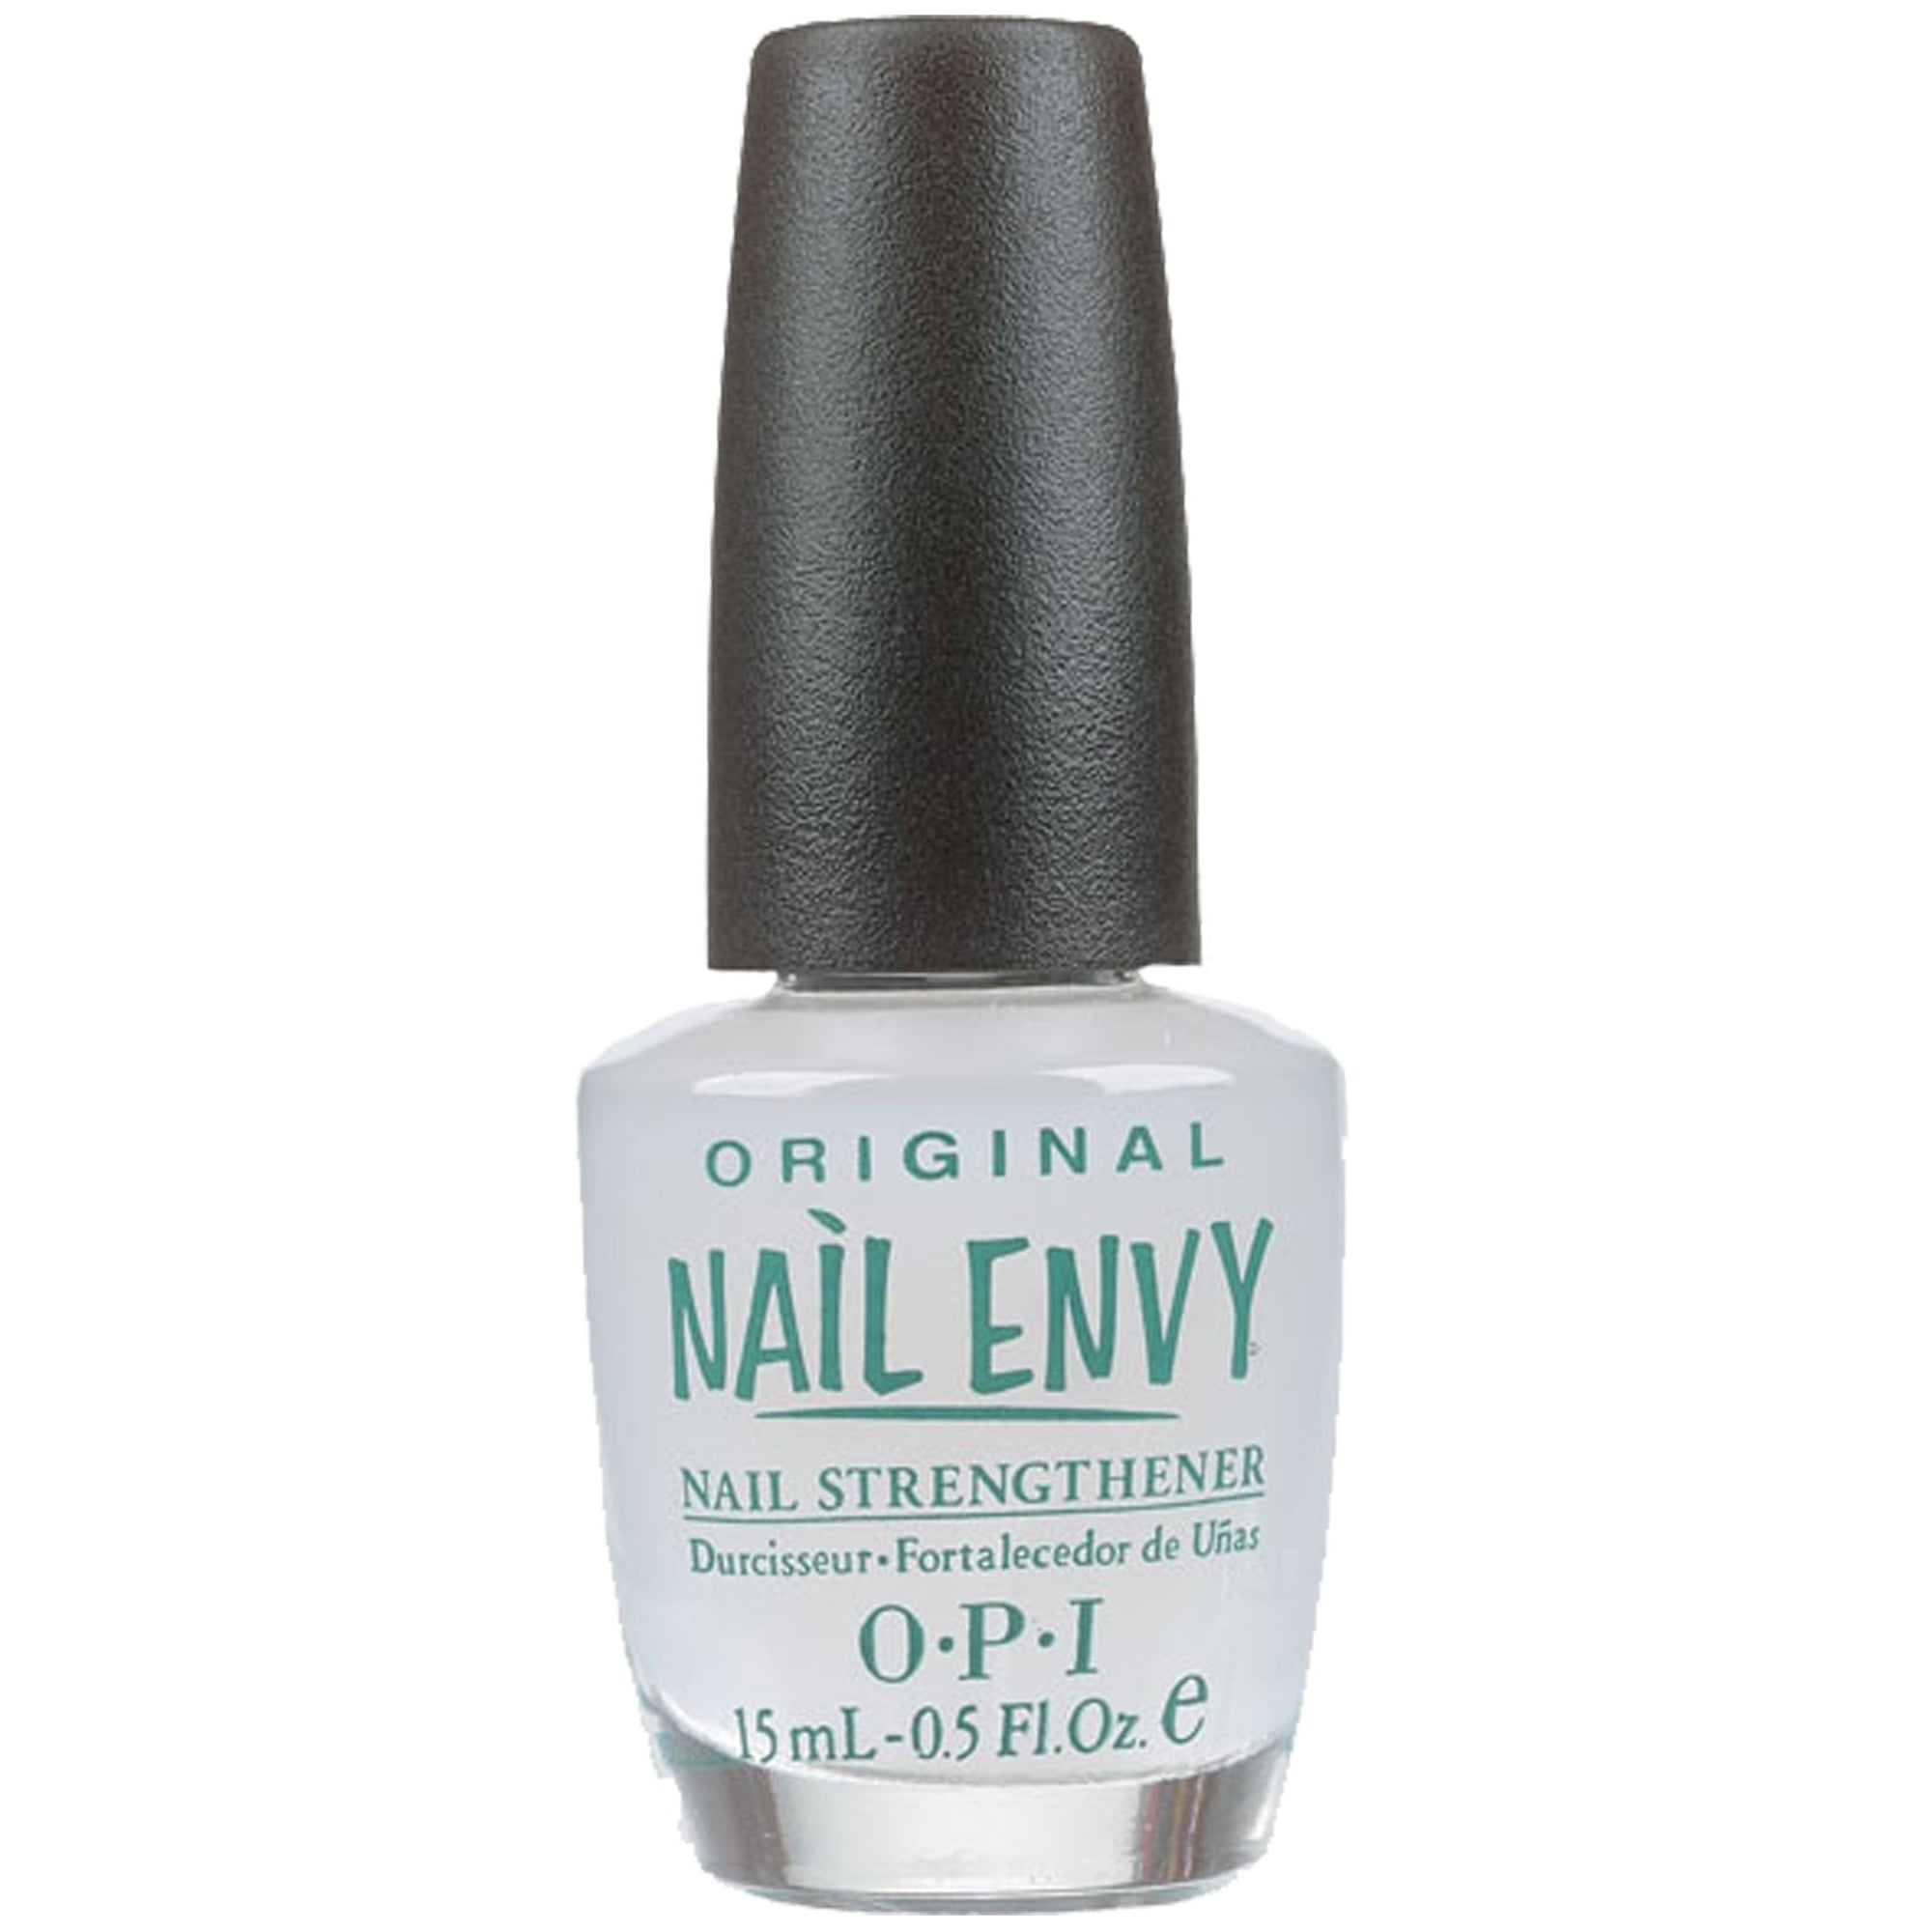 OPI Nail Envy Nail Strengthener Original Formula 15mL | Quality UK